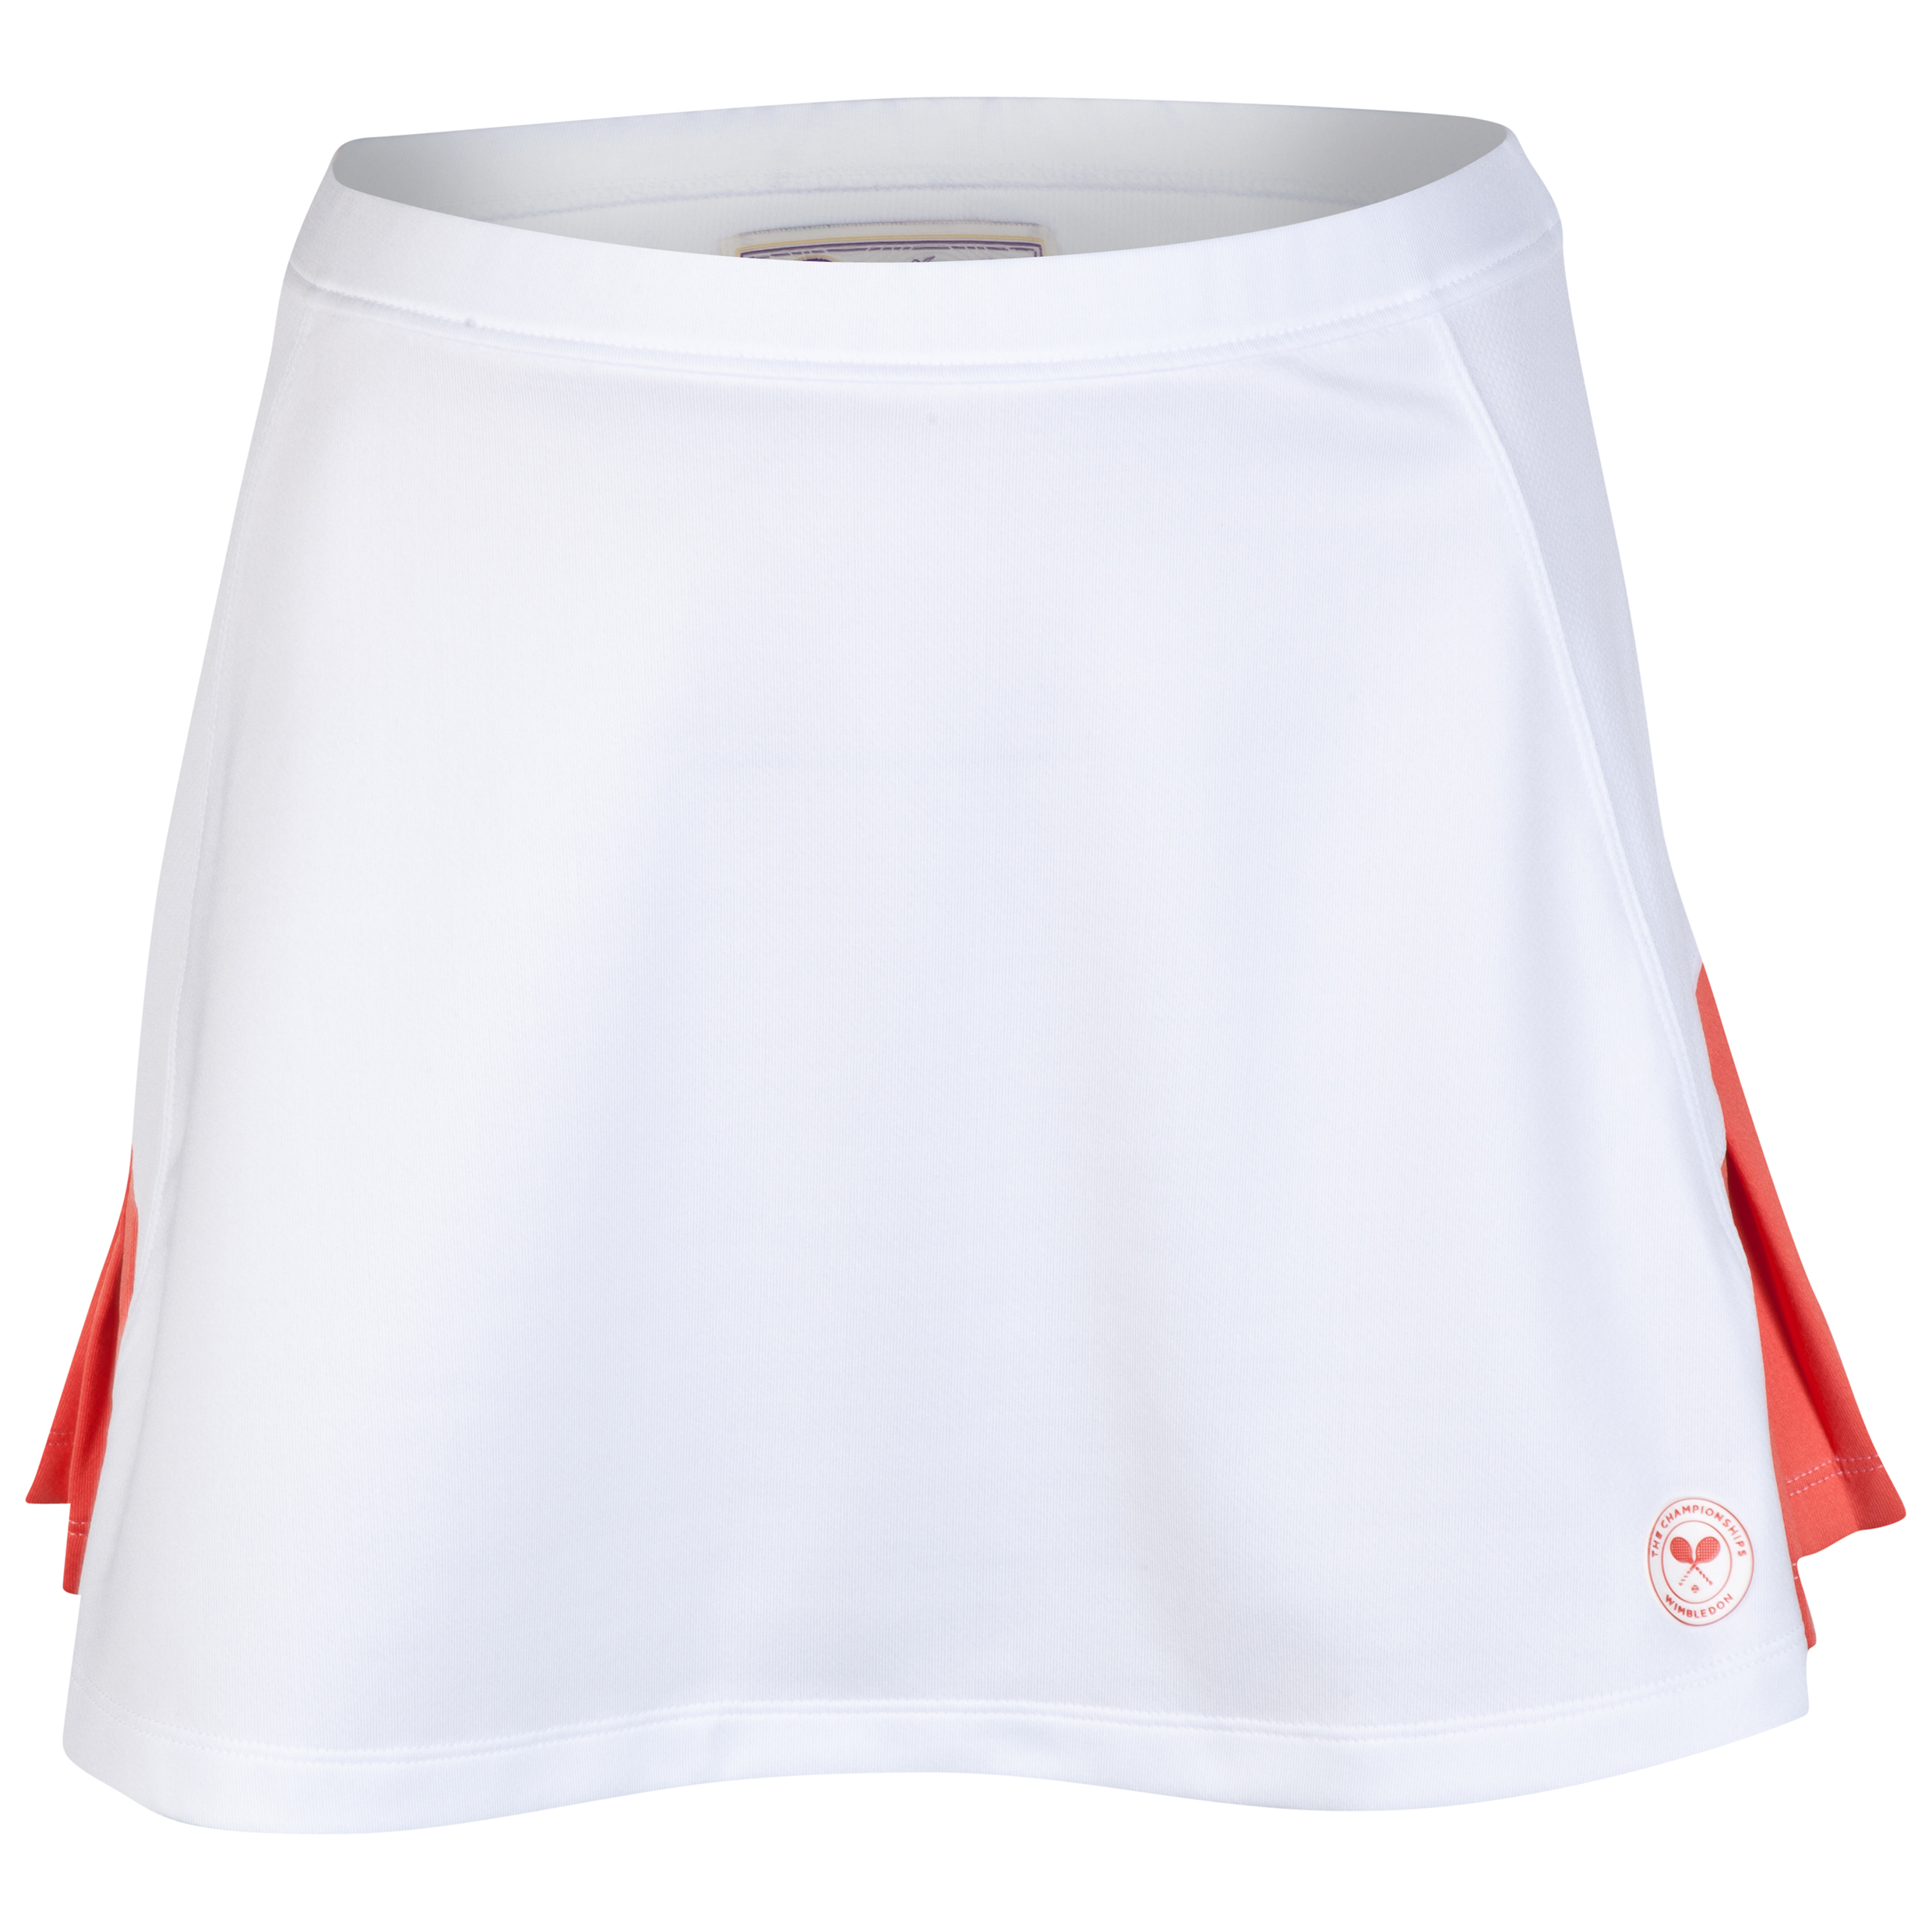 Wimbledon Skirt Pleatred Panels - Ladies White